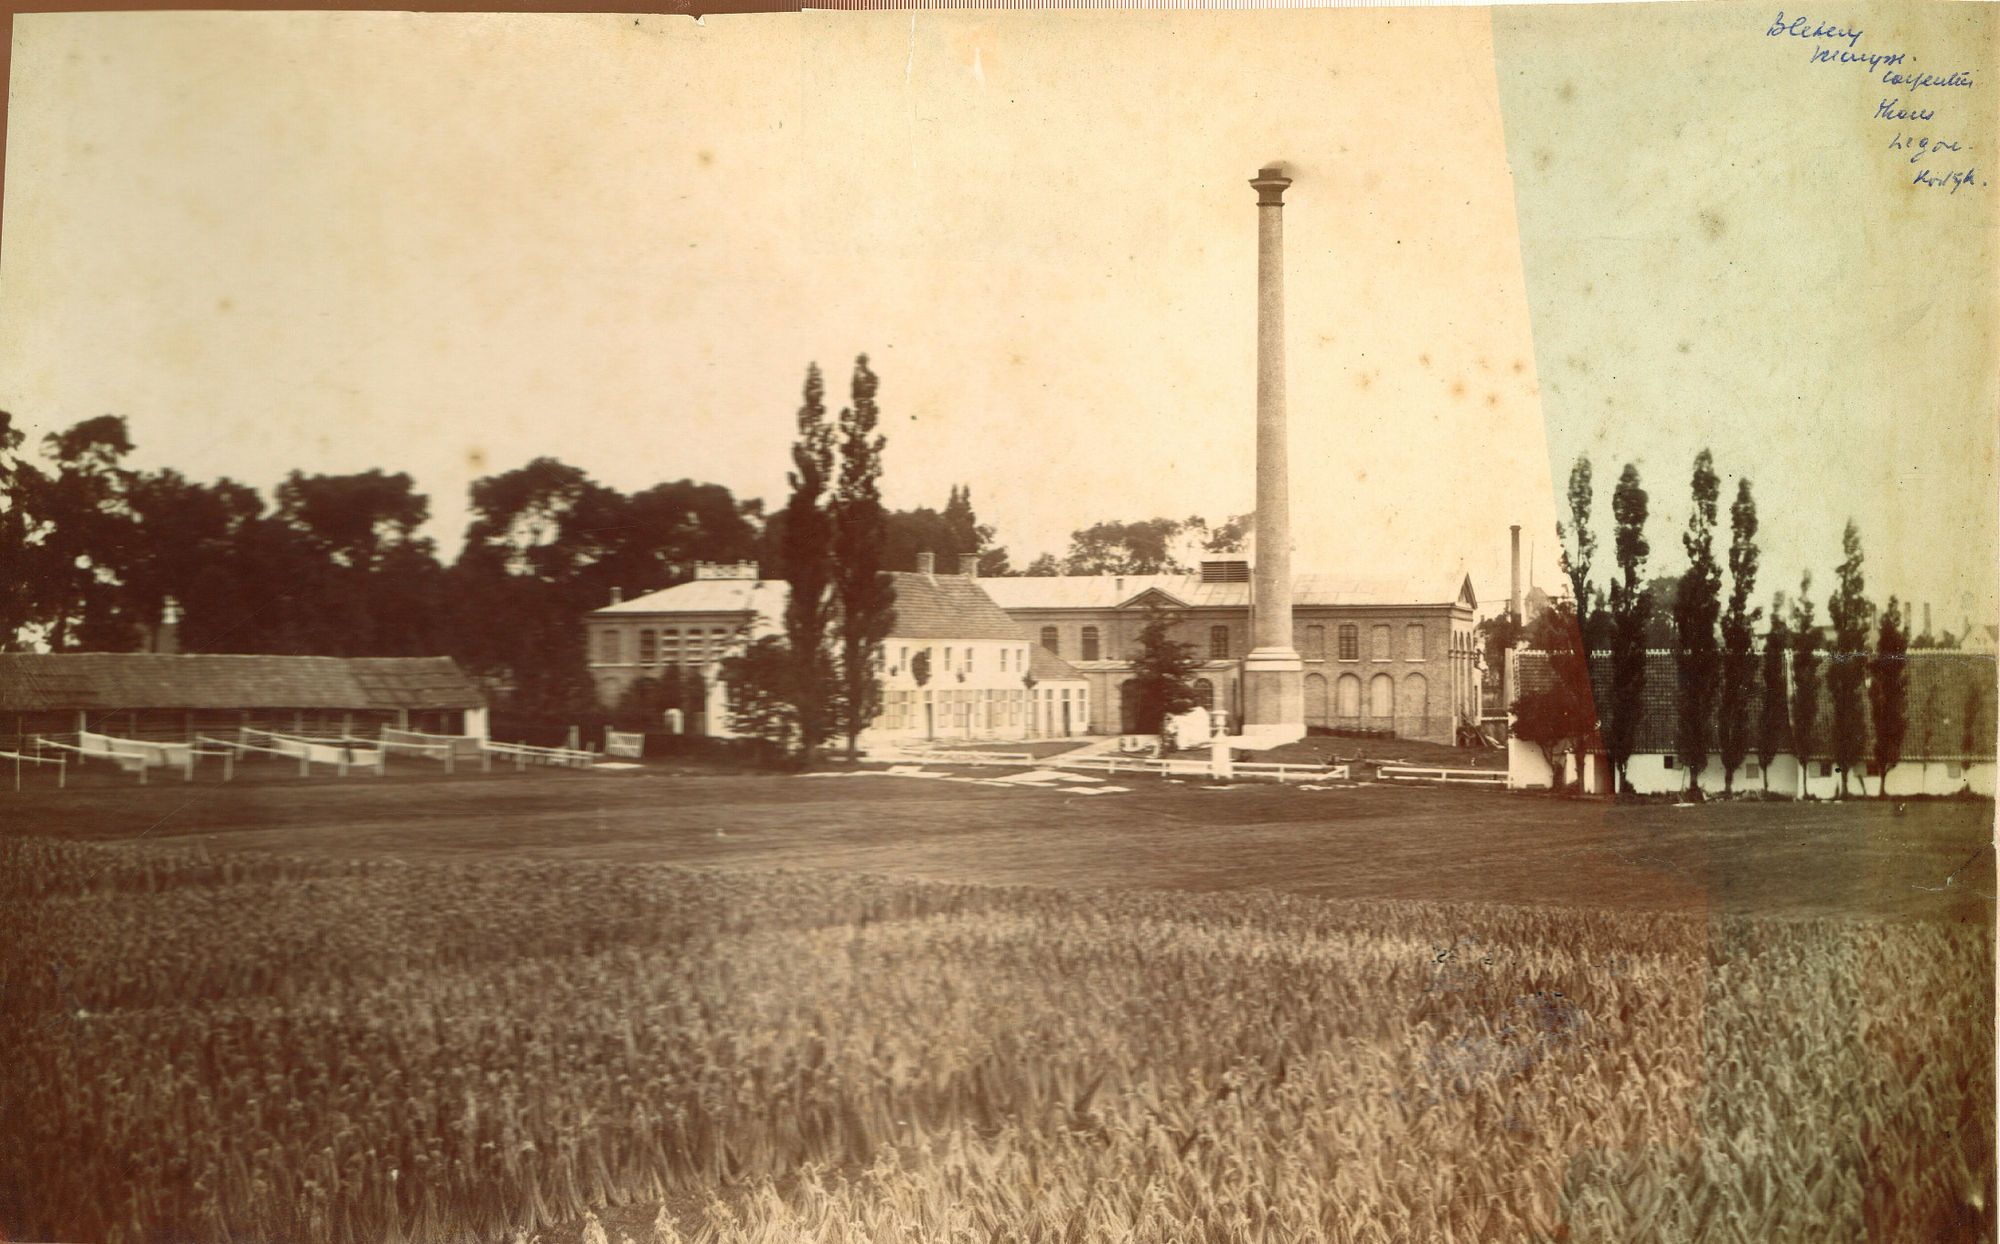 Blekerij Vercruysse-Carpentier in 1858